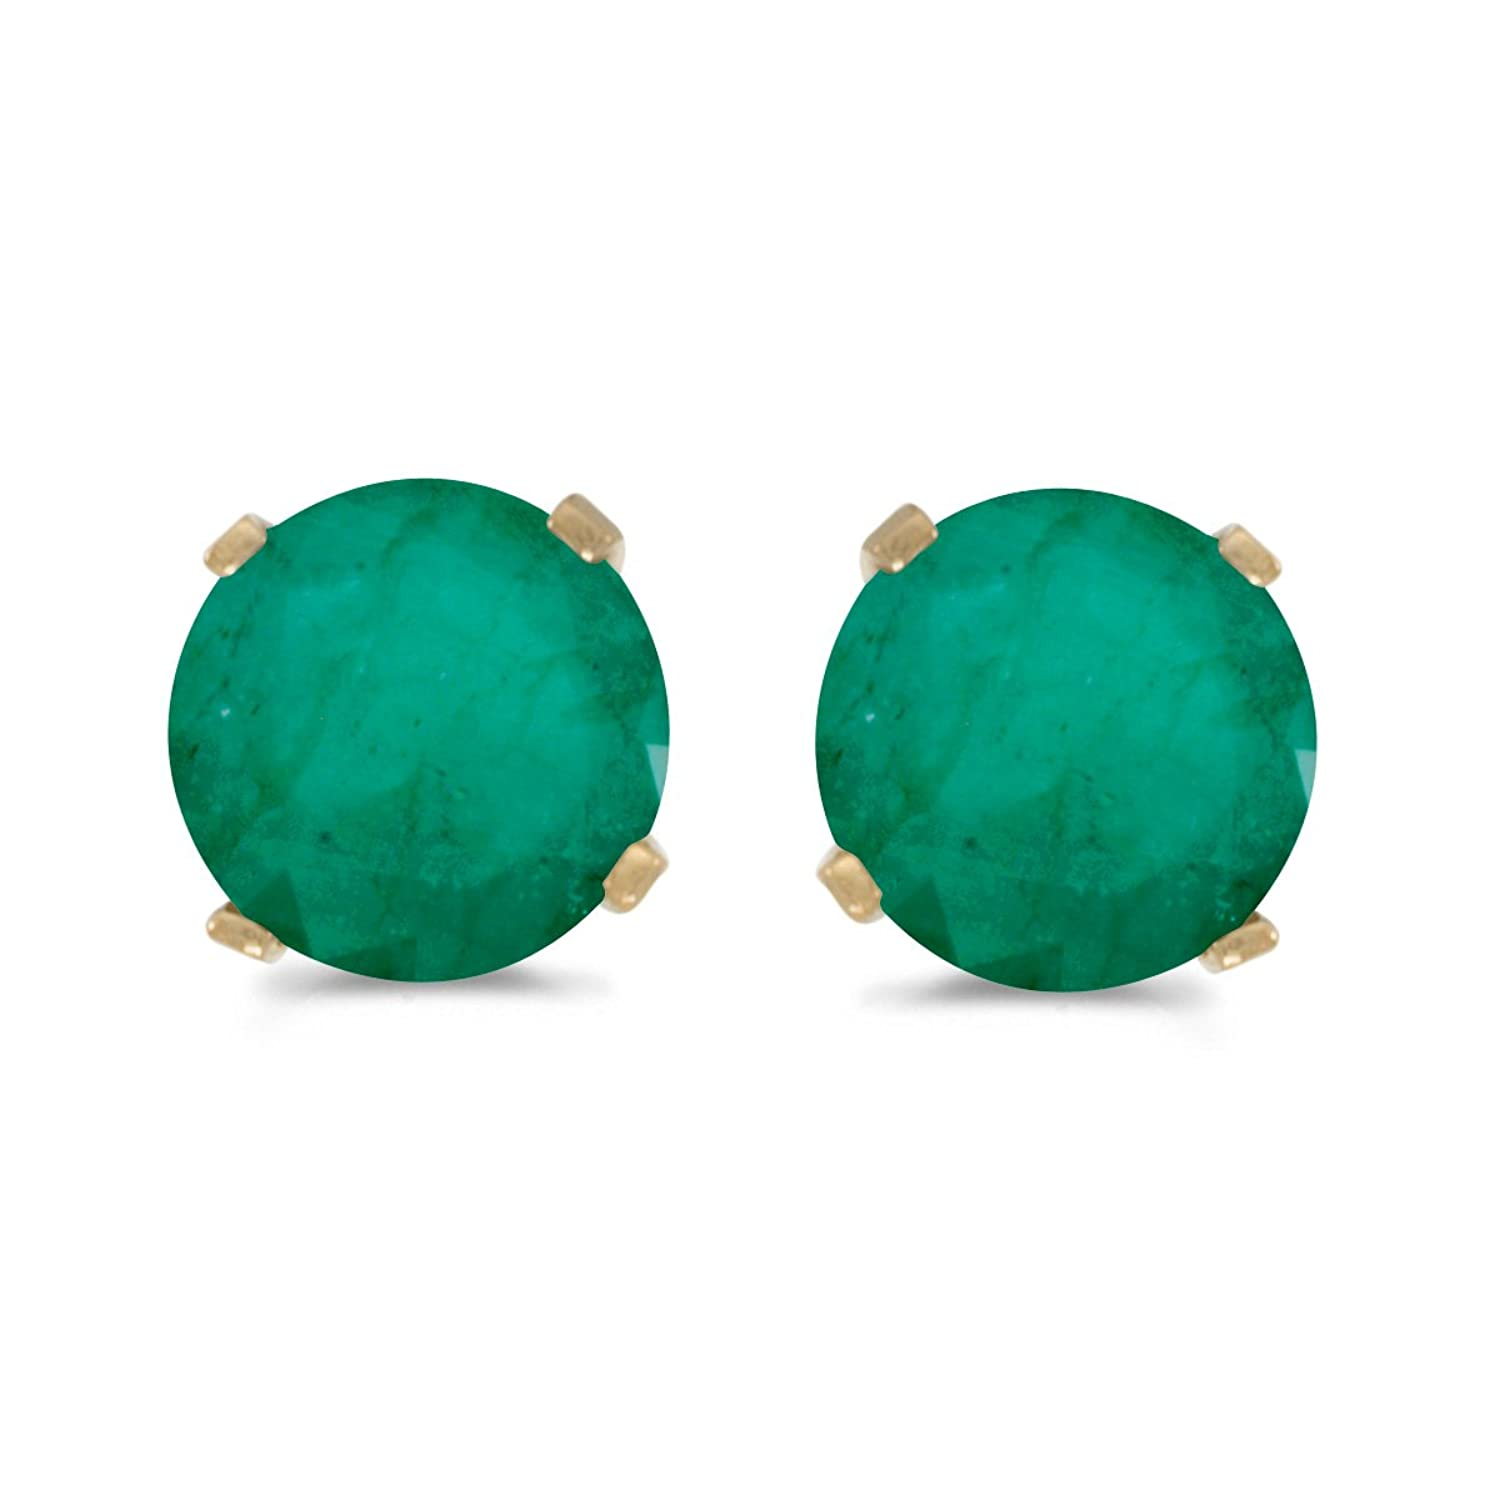 s accessories drop earrings natural linear pearl women jewelry c emerald zi orbital dillards